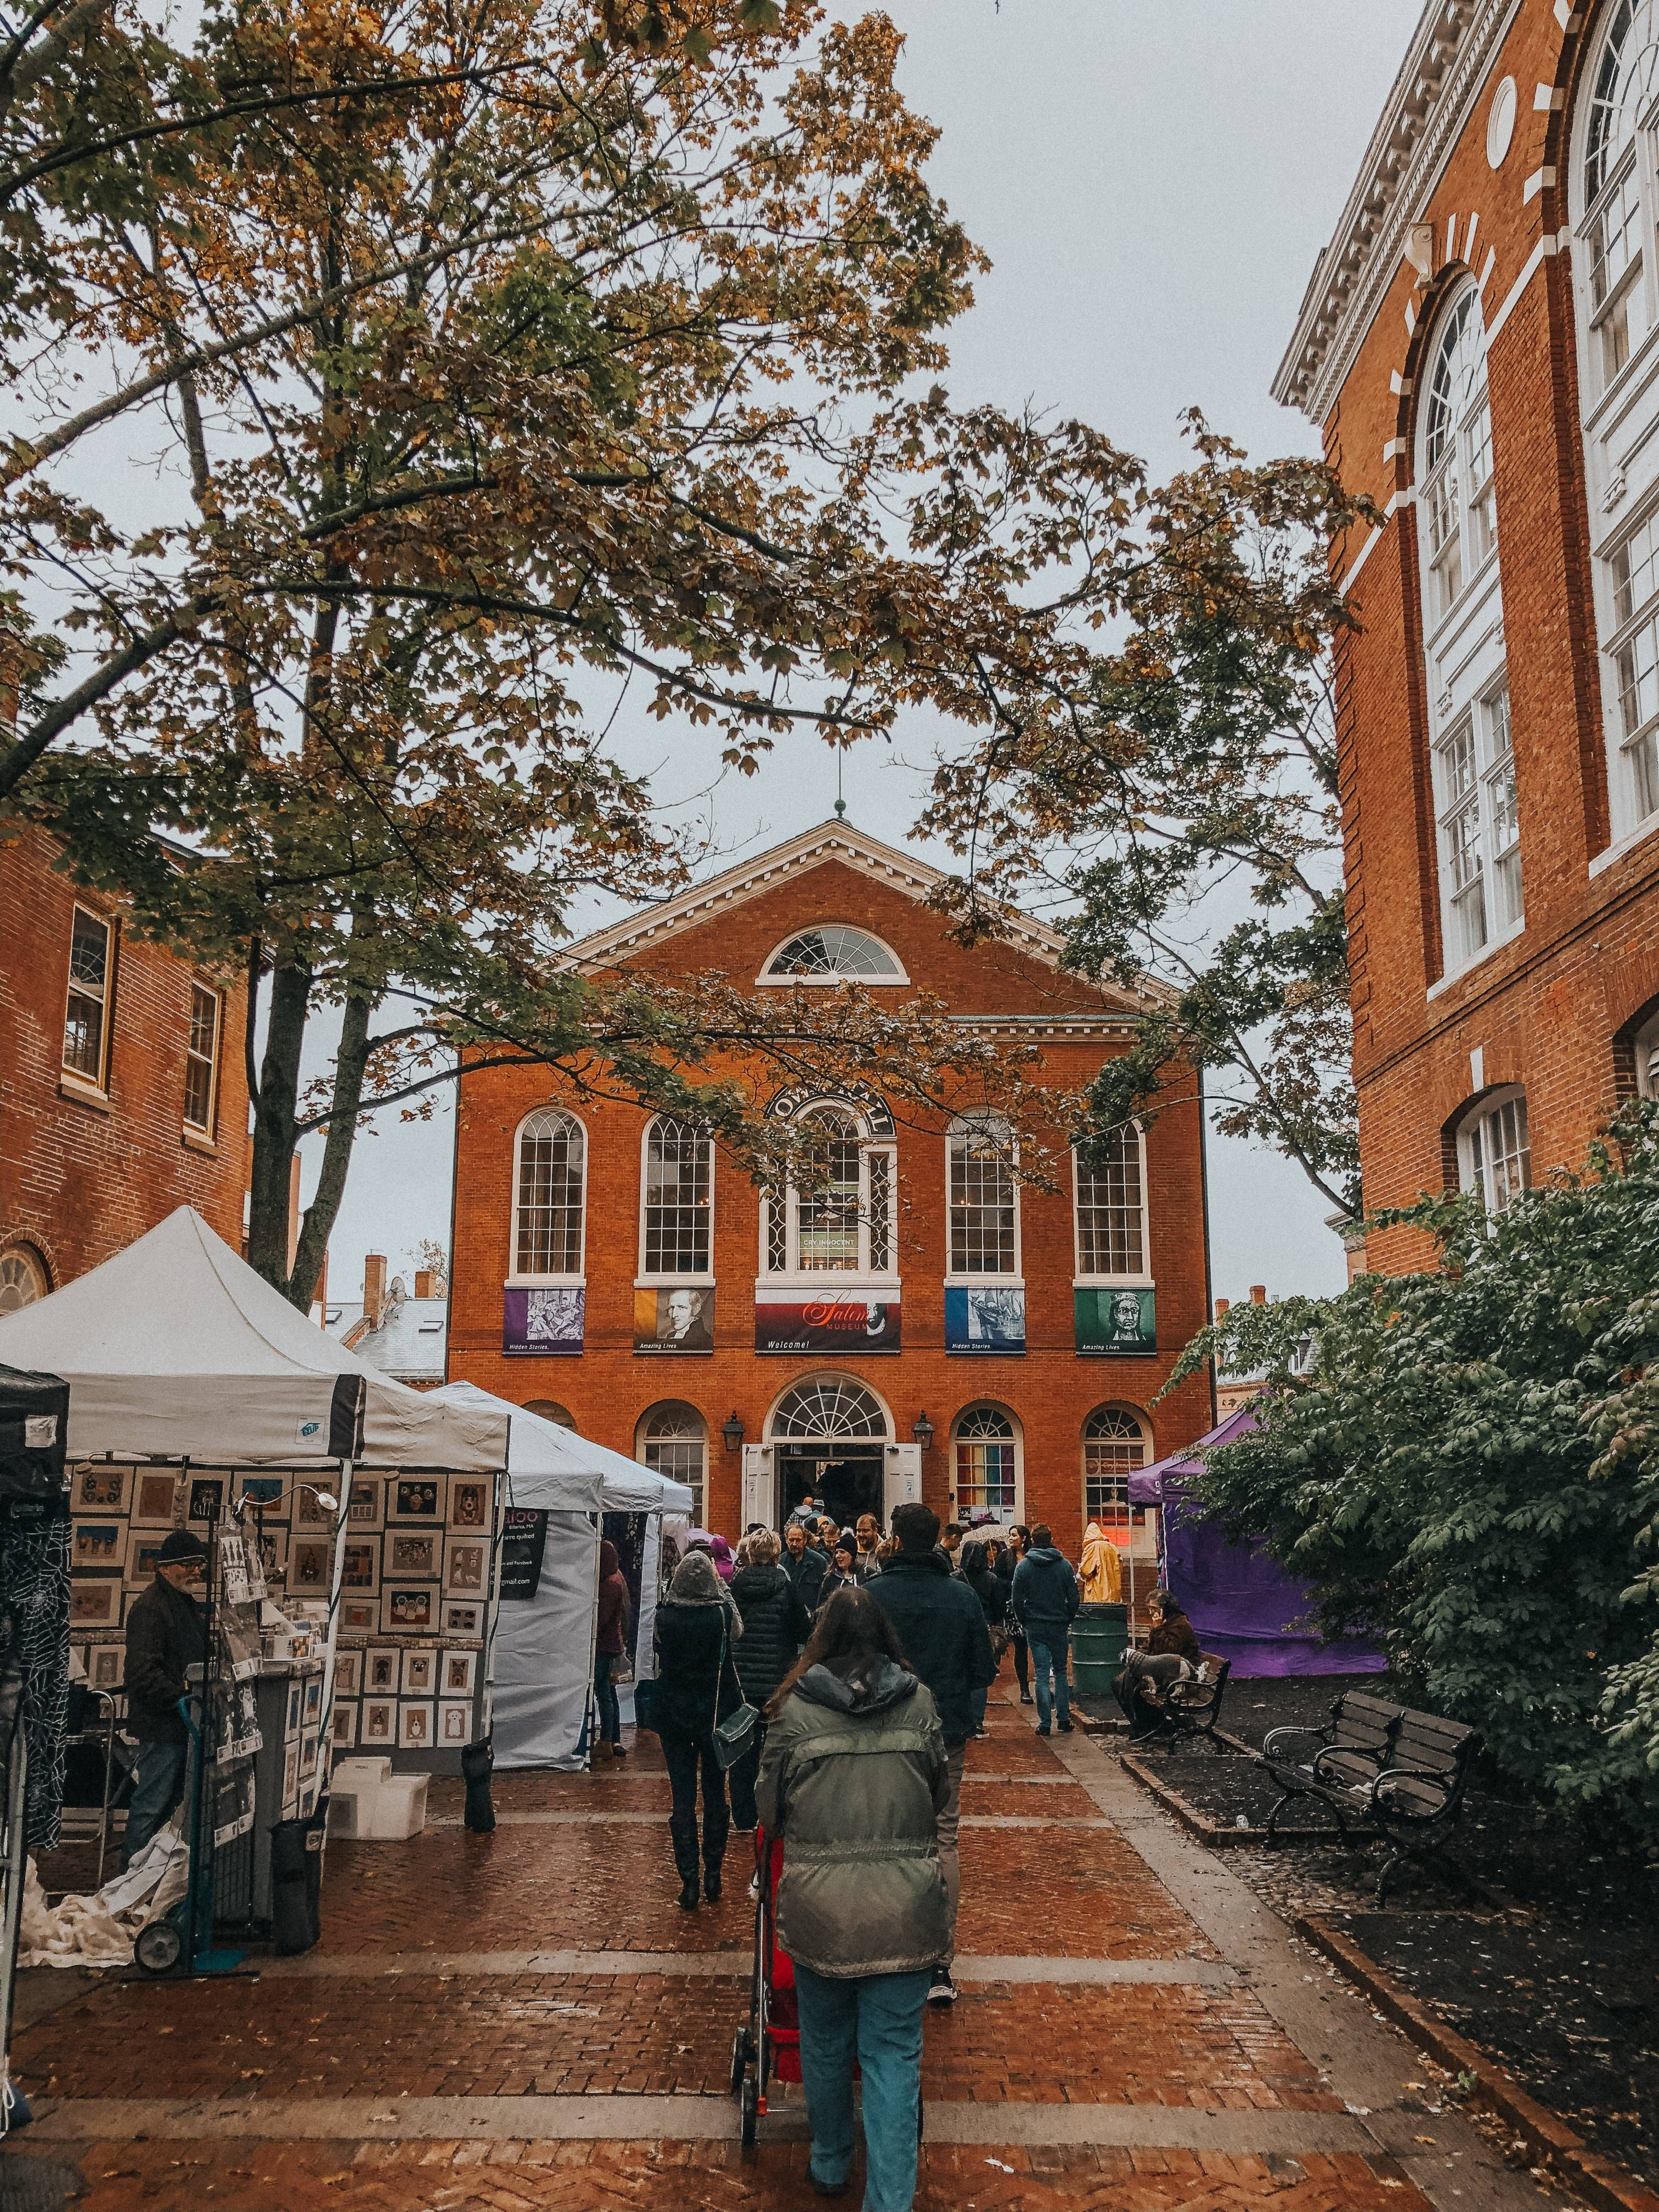 Things To Do In Salem In October Boston Getaway Day Trips From